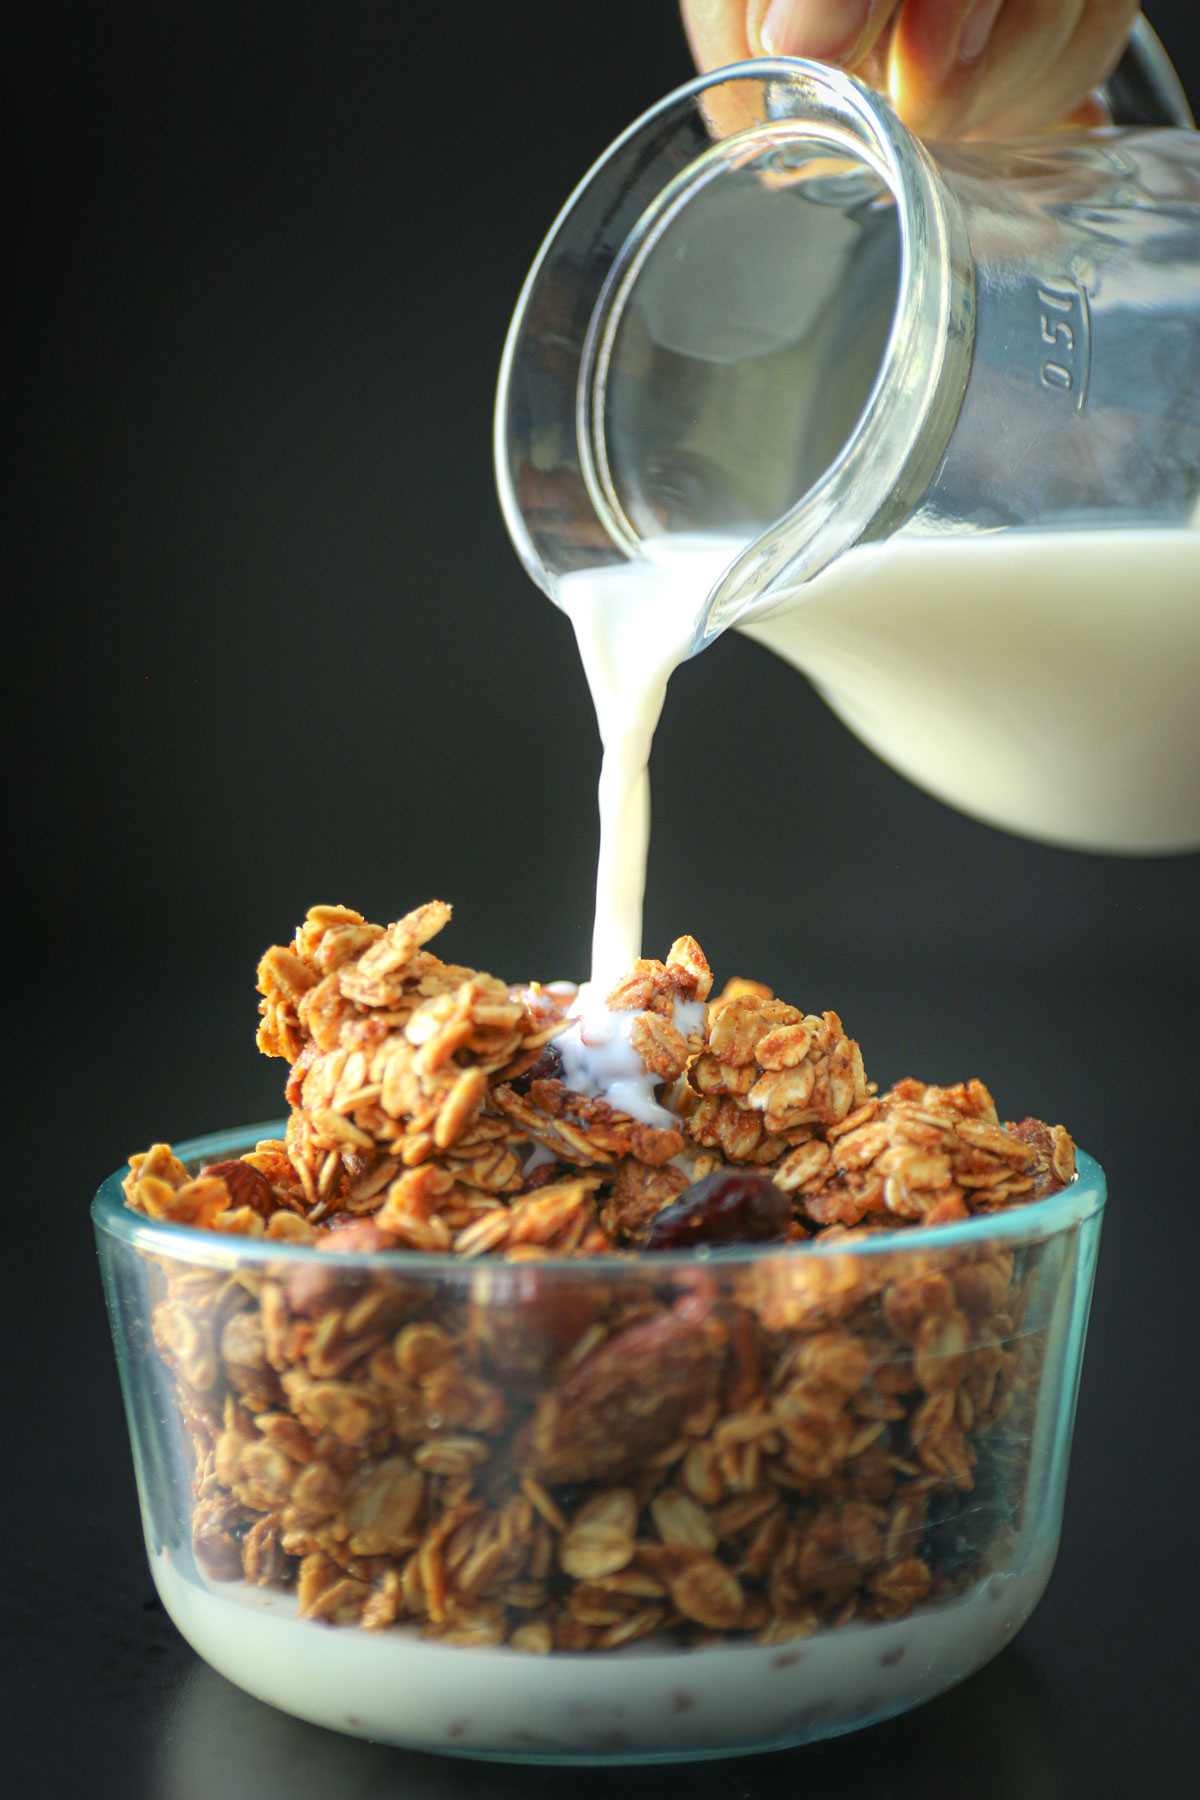 pouring milk from small glass pitcher into glass bowl of granola.